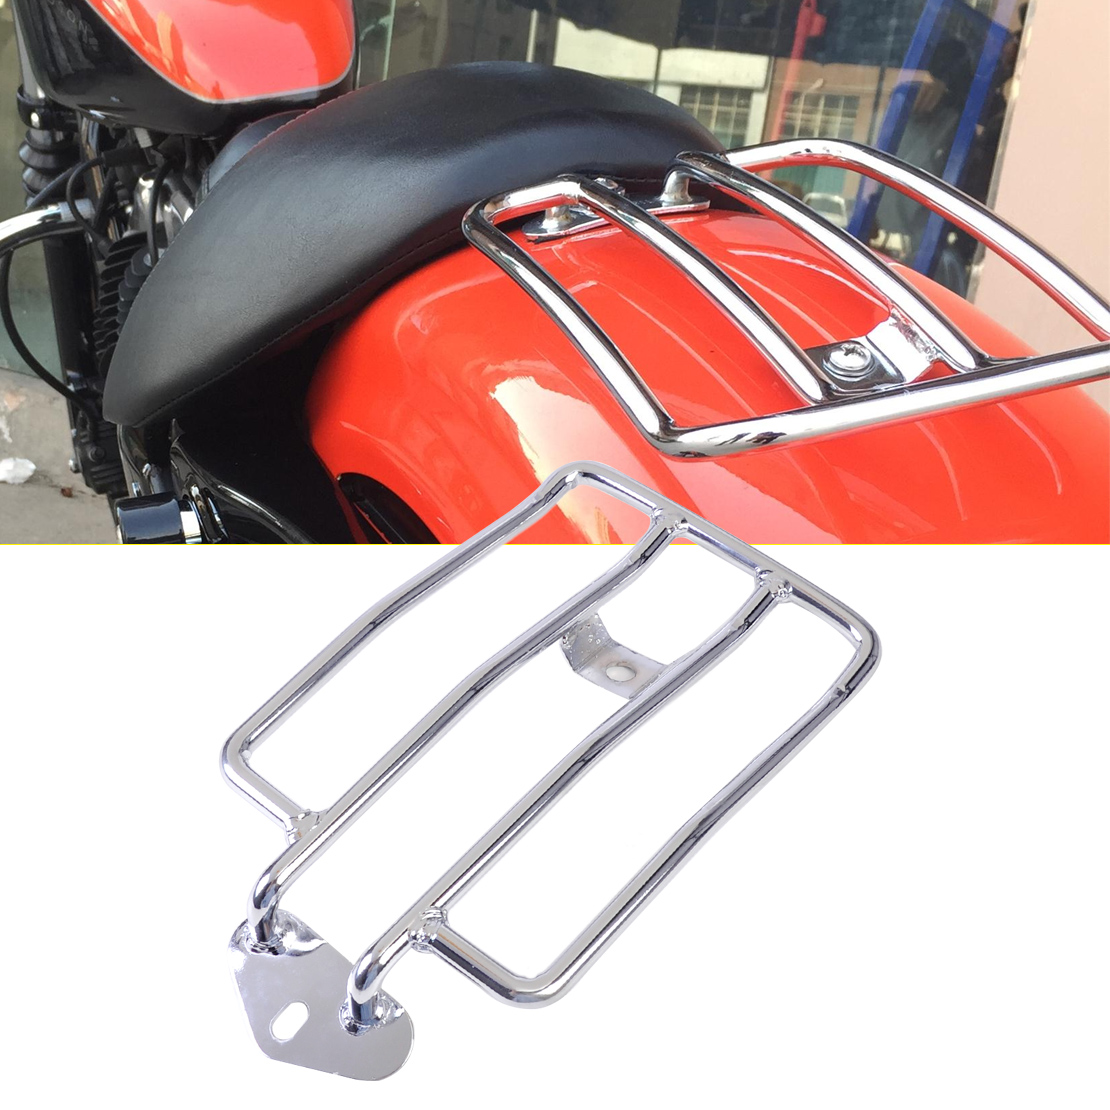 DWCX Motorcycle Silver Seat Luggage Shelf Carrier Support Rack for Harley Sportster 1200 883 with stock solo seat<br>